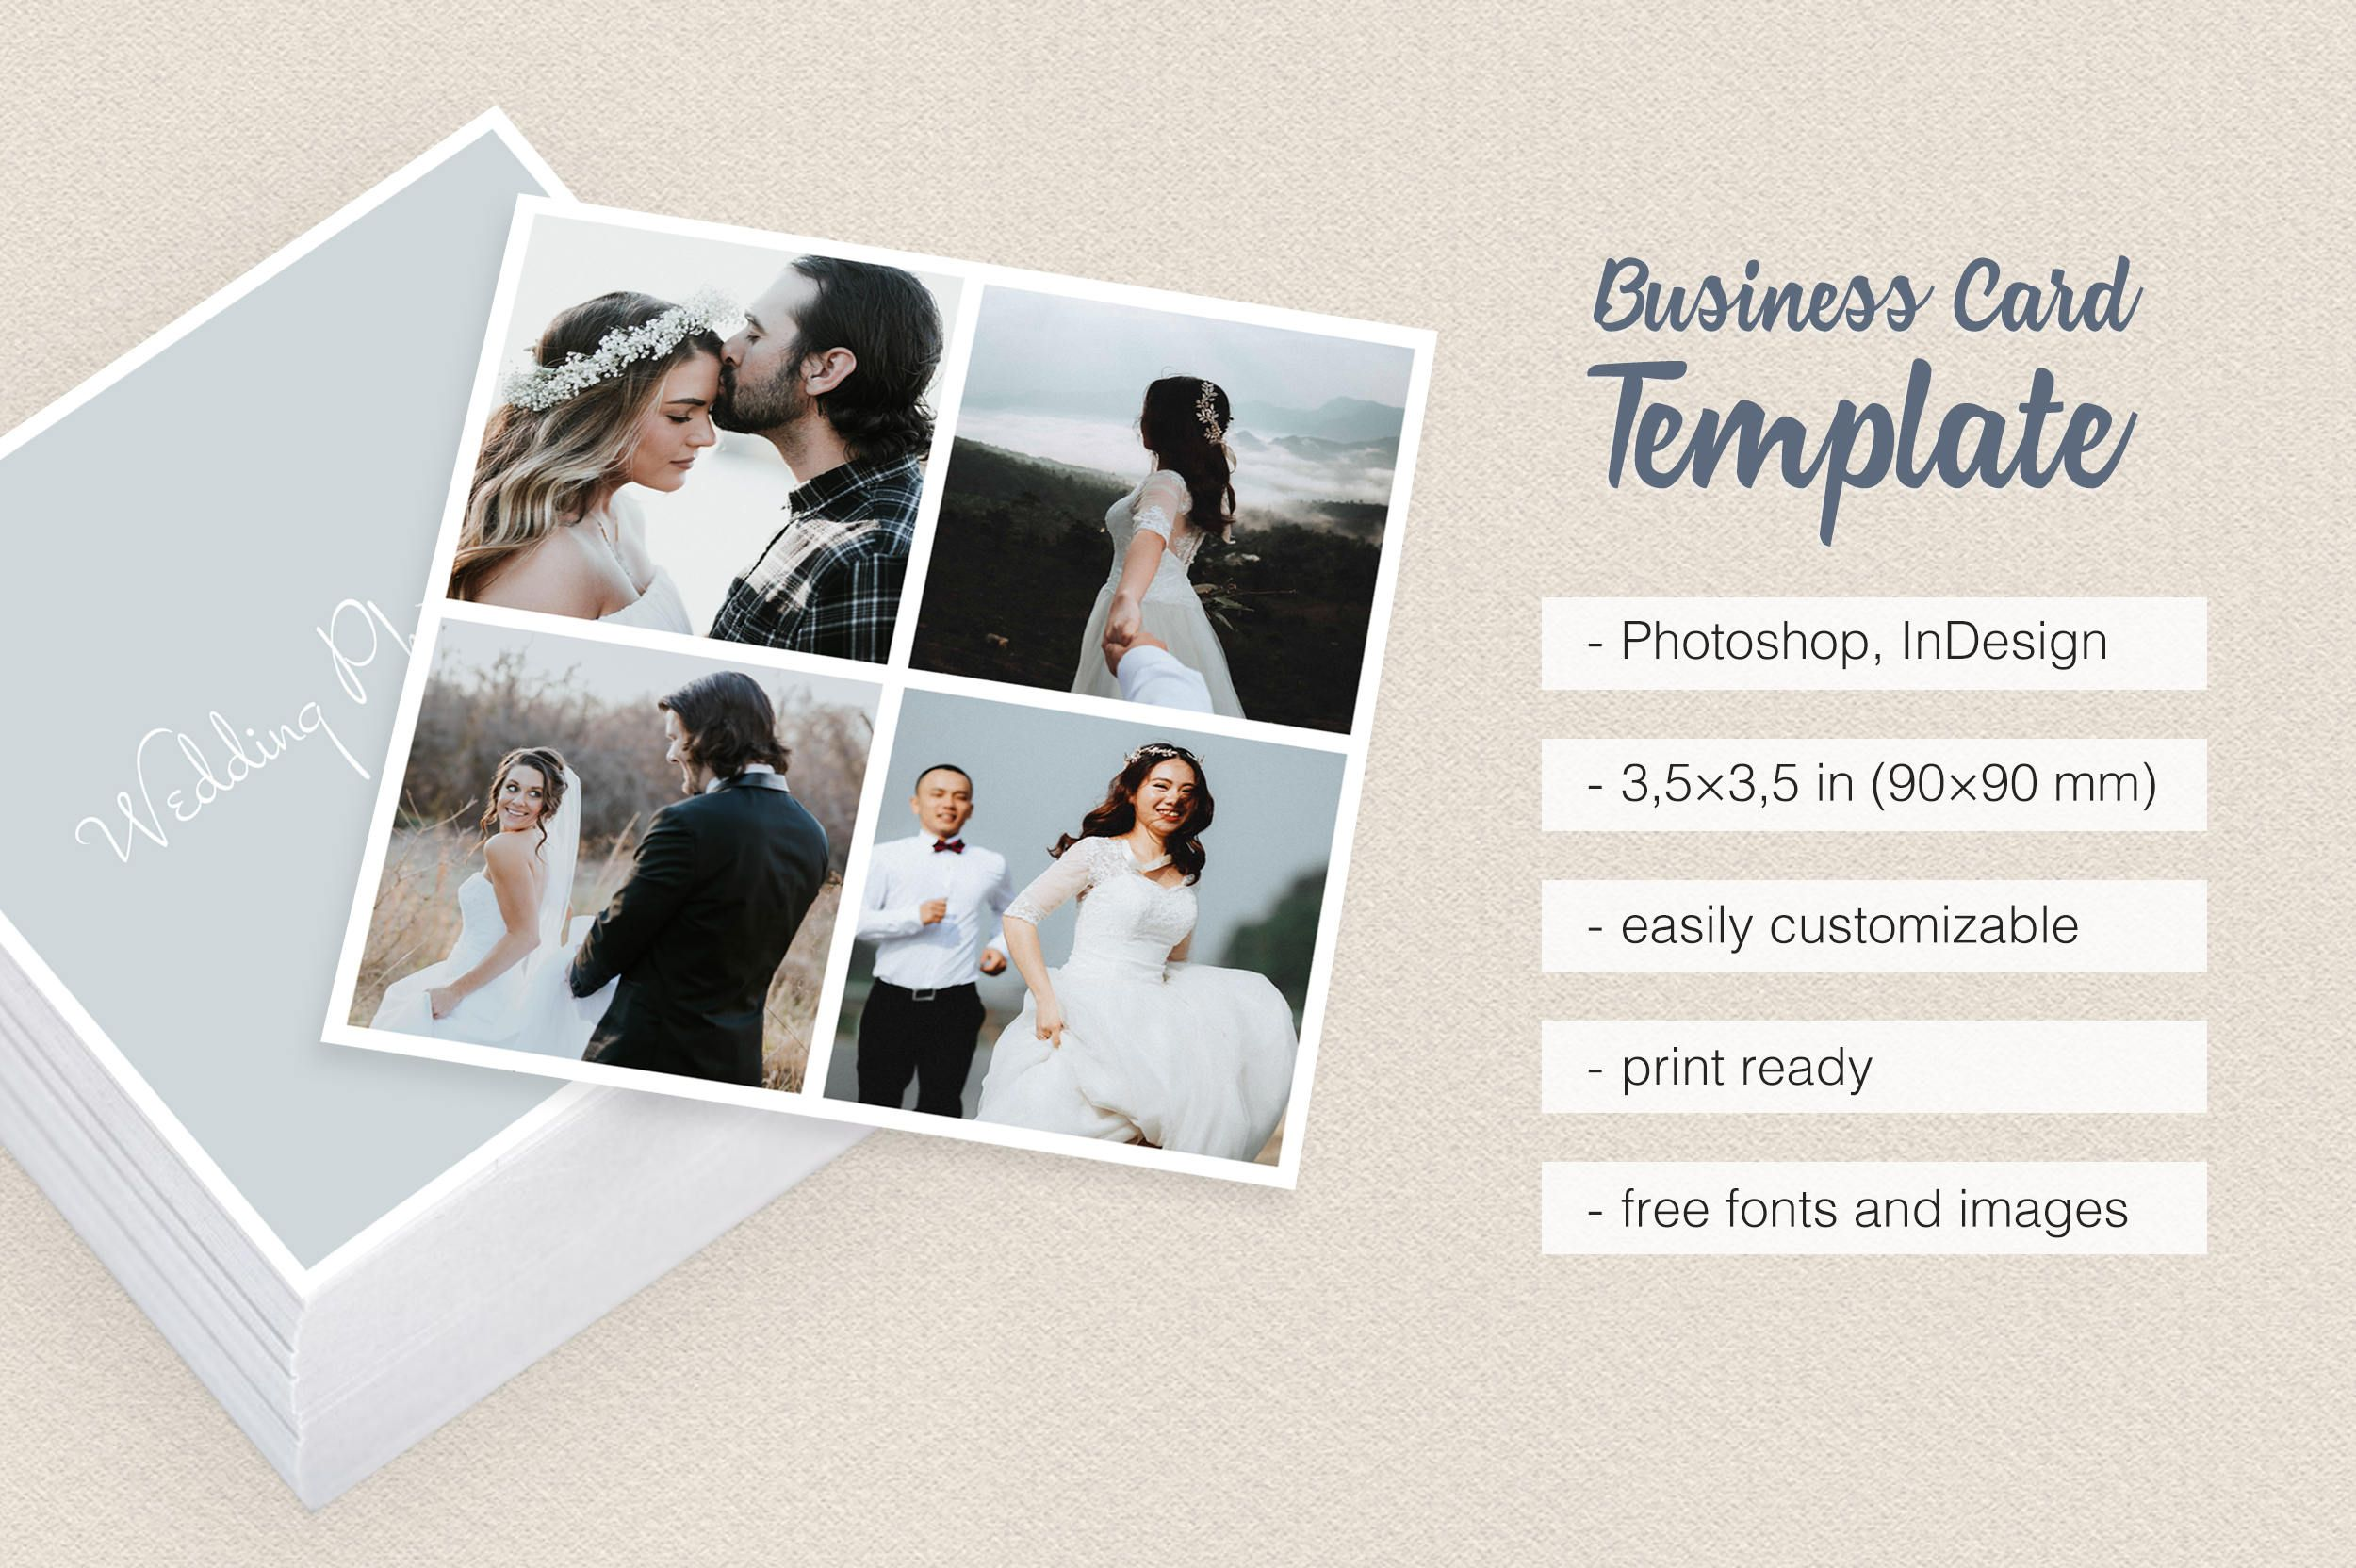 Wedding photographer square collage business card template multiple wedding photographer square collage business card template multiple photos with borders frames colourmoves